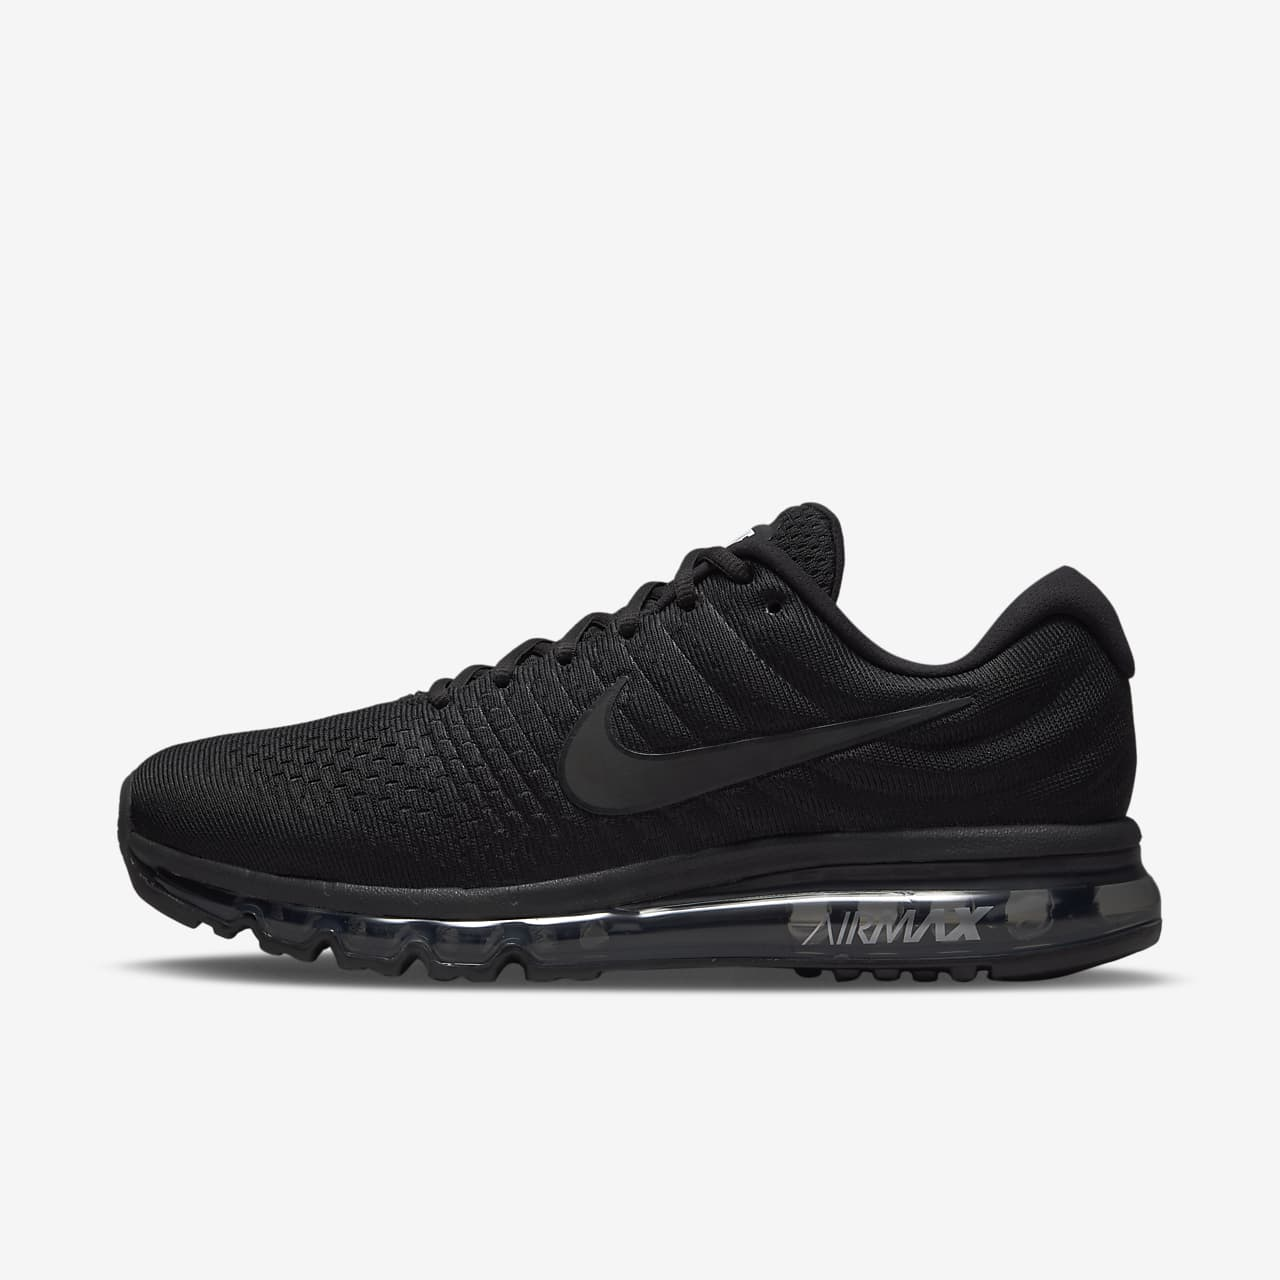 1dbc9a12c1c6 Nike Air Max 2017 Men s Shoe. Nike.com NZ